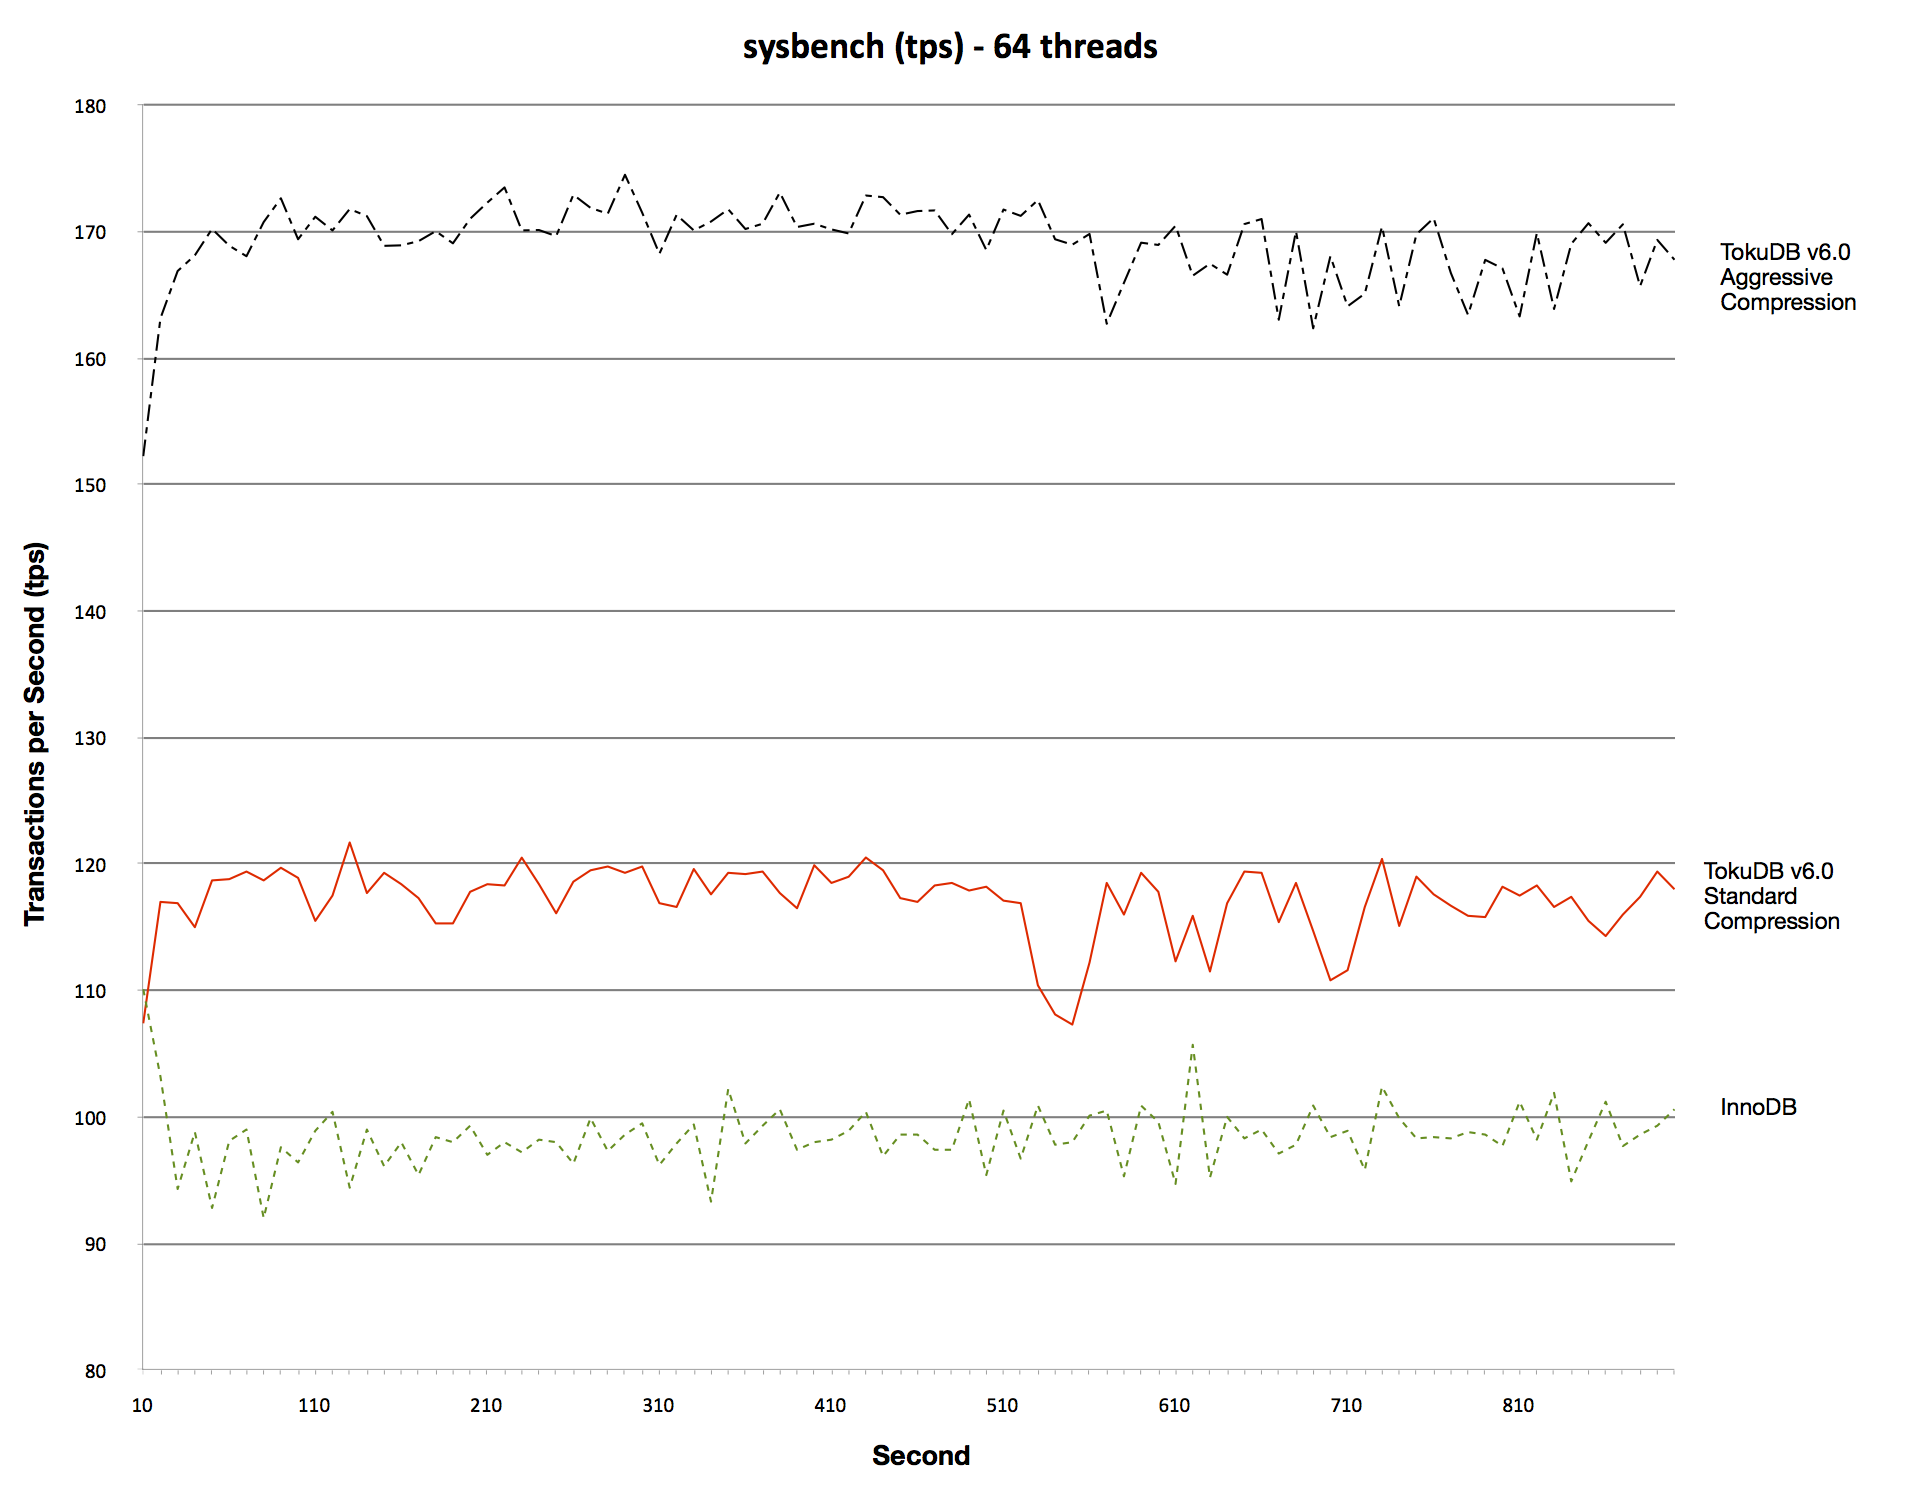 Sysbench performance with different compressors